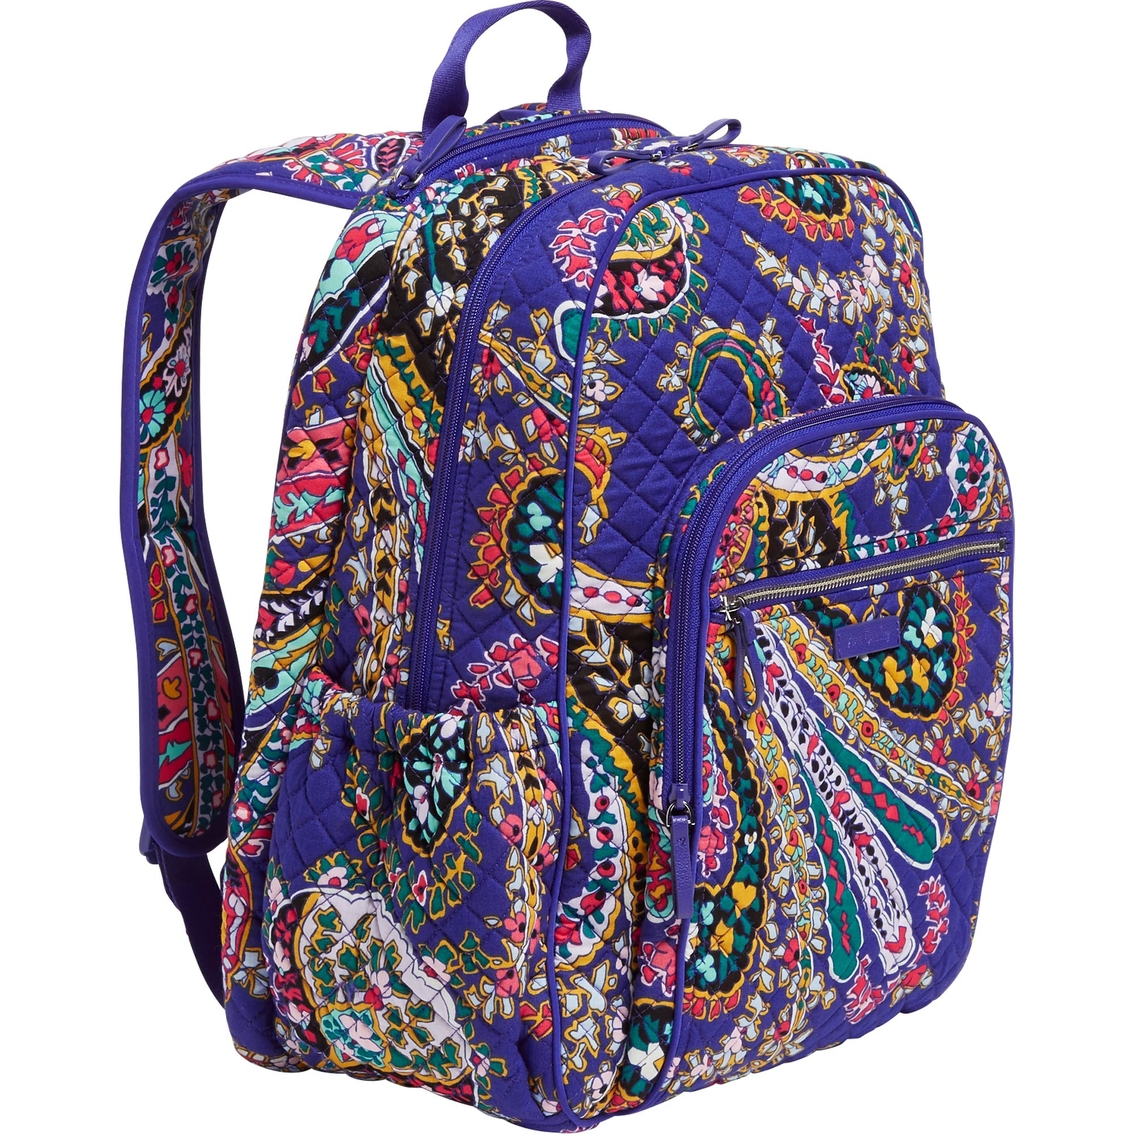 Vera Bradley Iconic Campus Backpack d31831fce6976